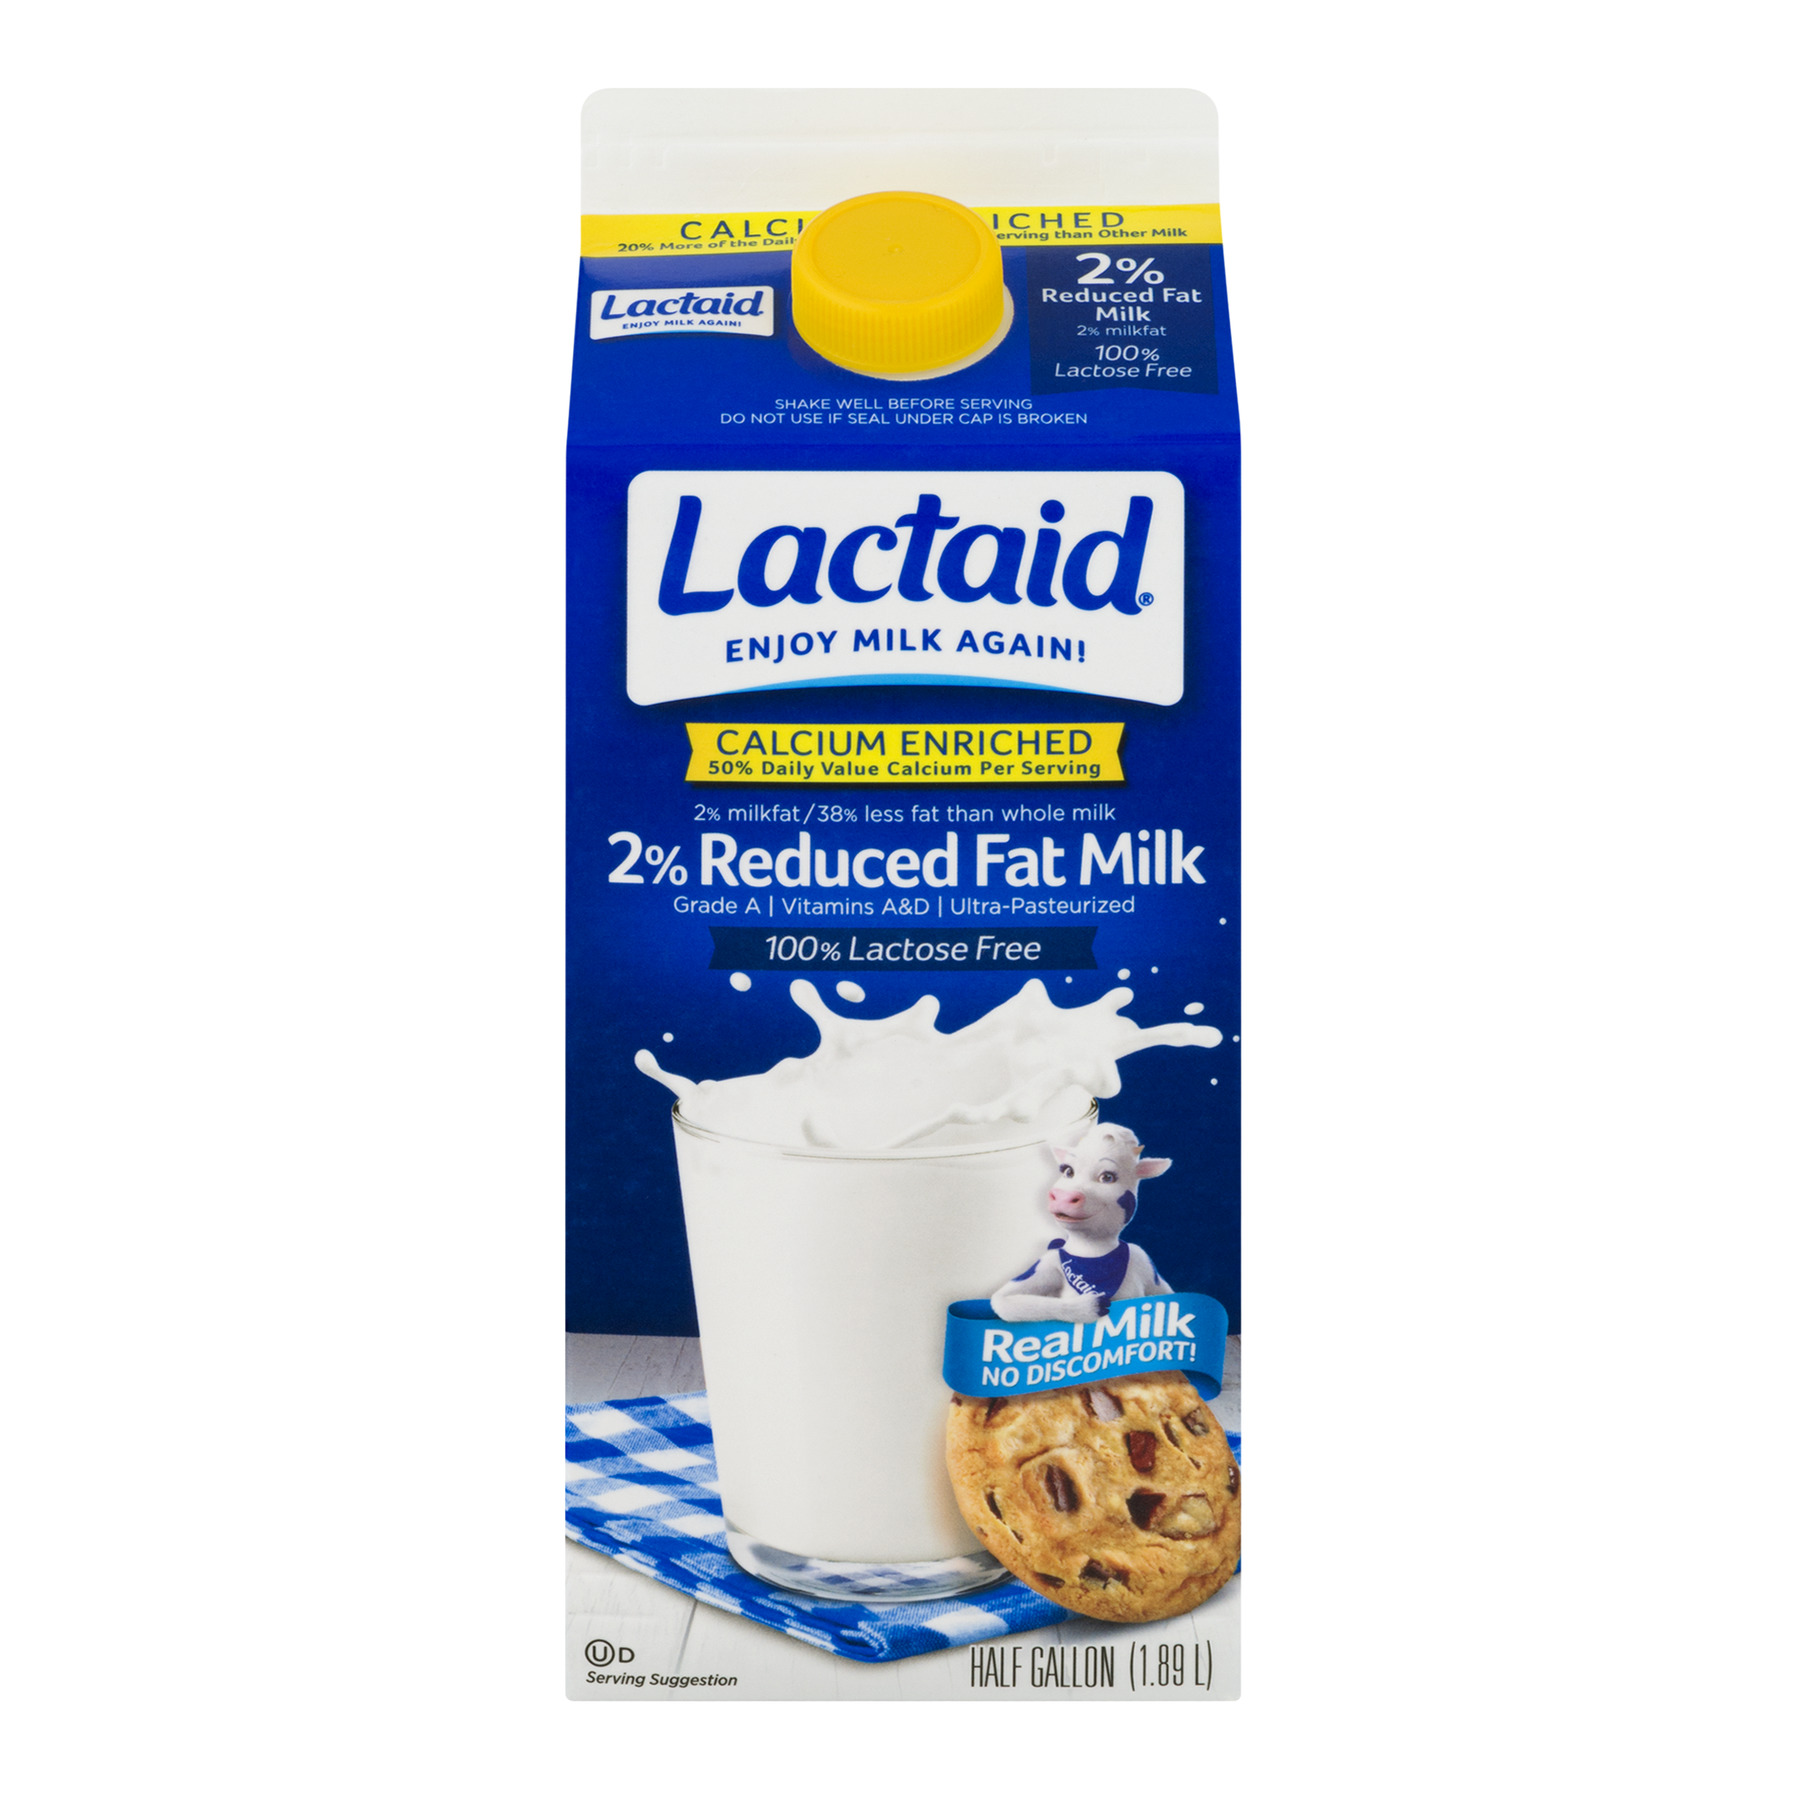 Lactaid 100% Lactose Free 2% Reduced Fat Milk, 1.89 L